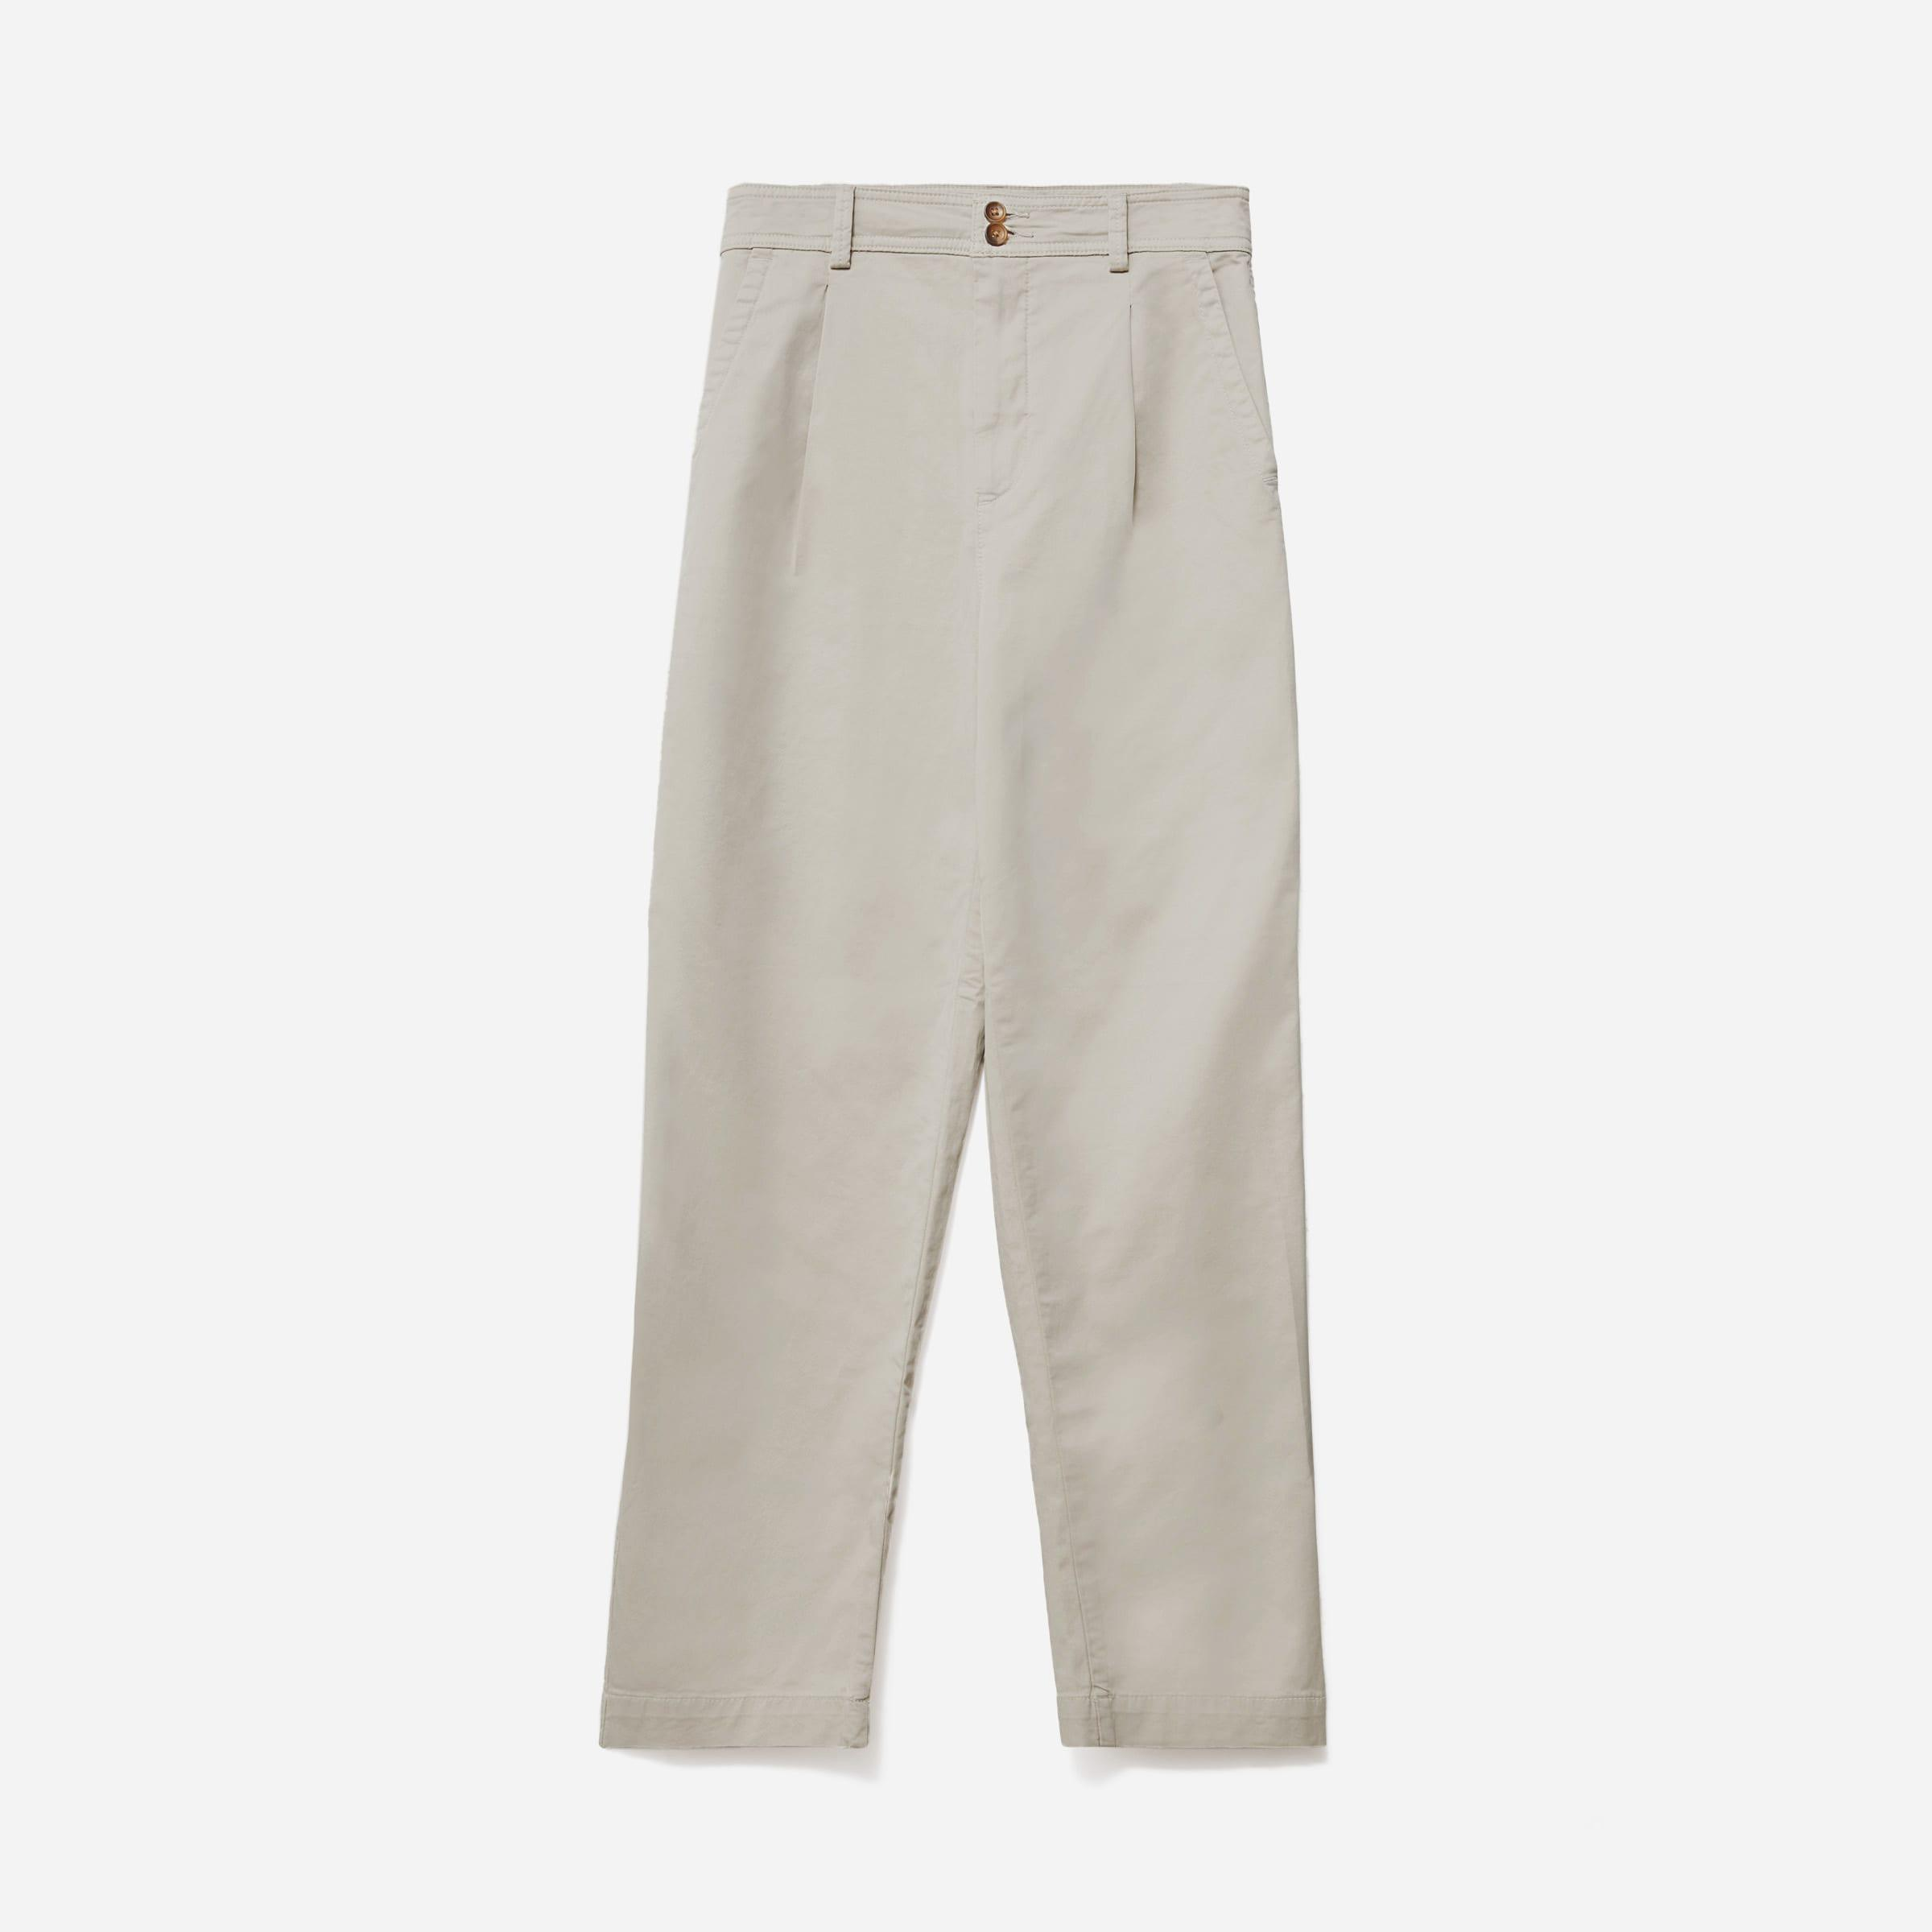 The Pleated Chino 4